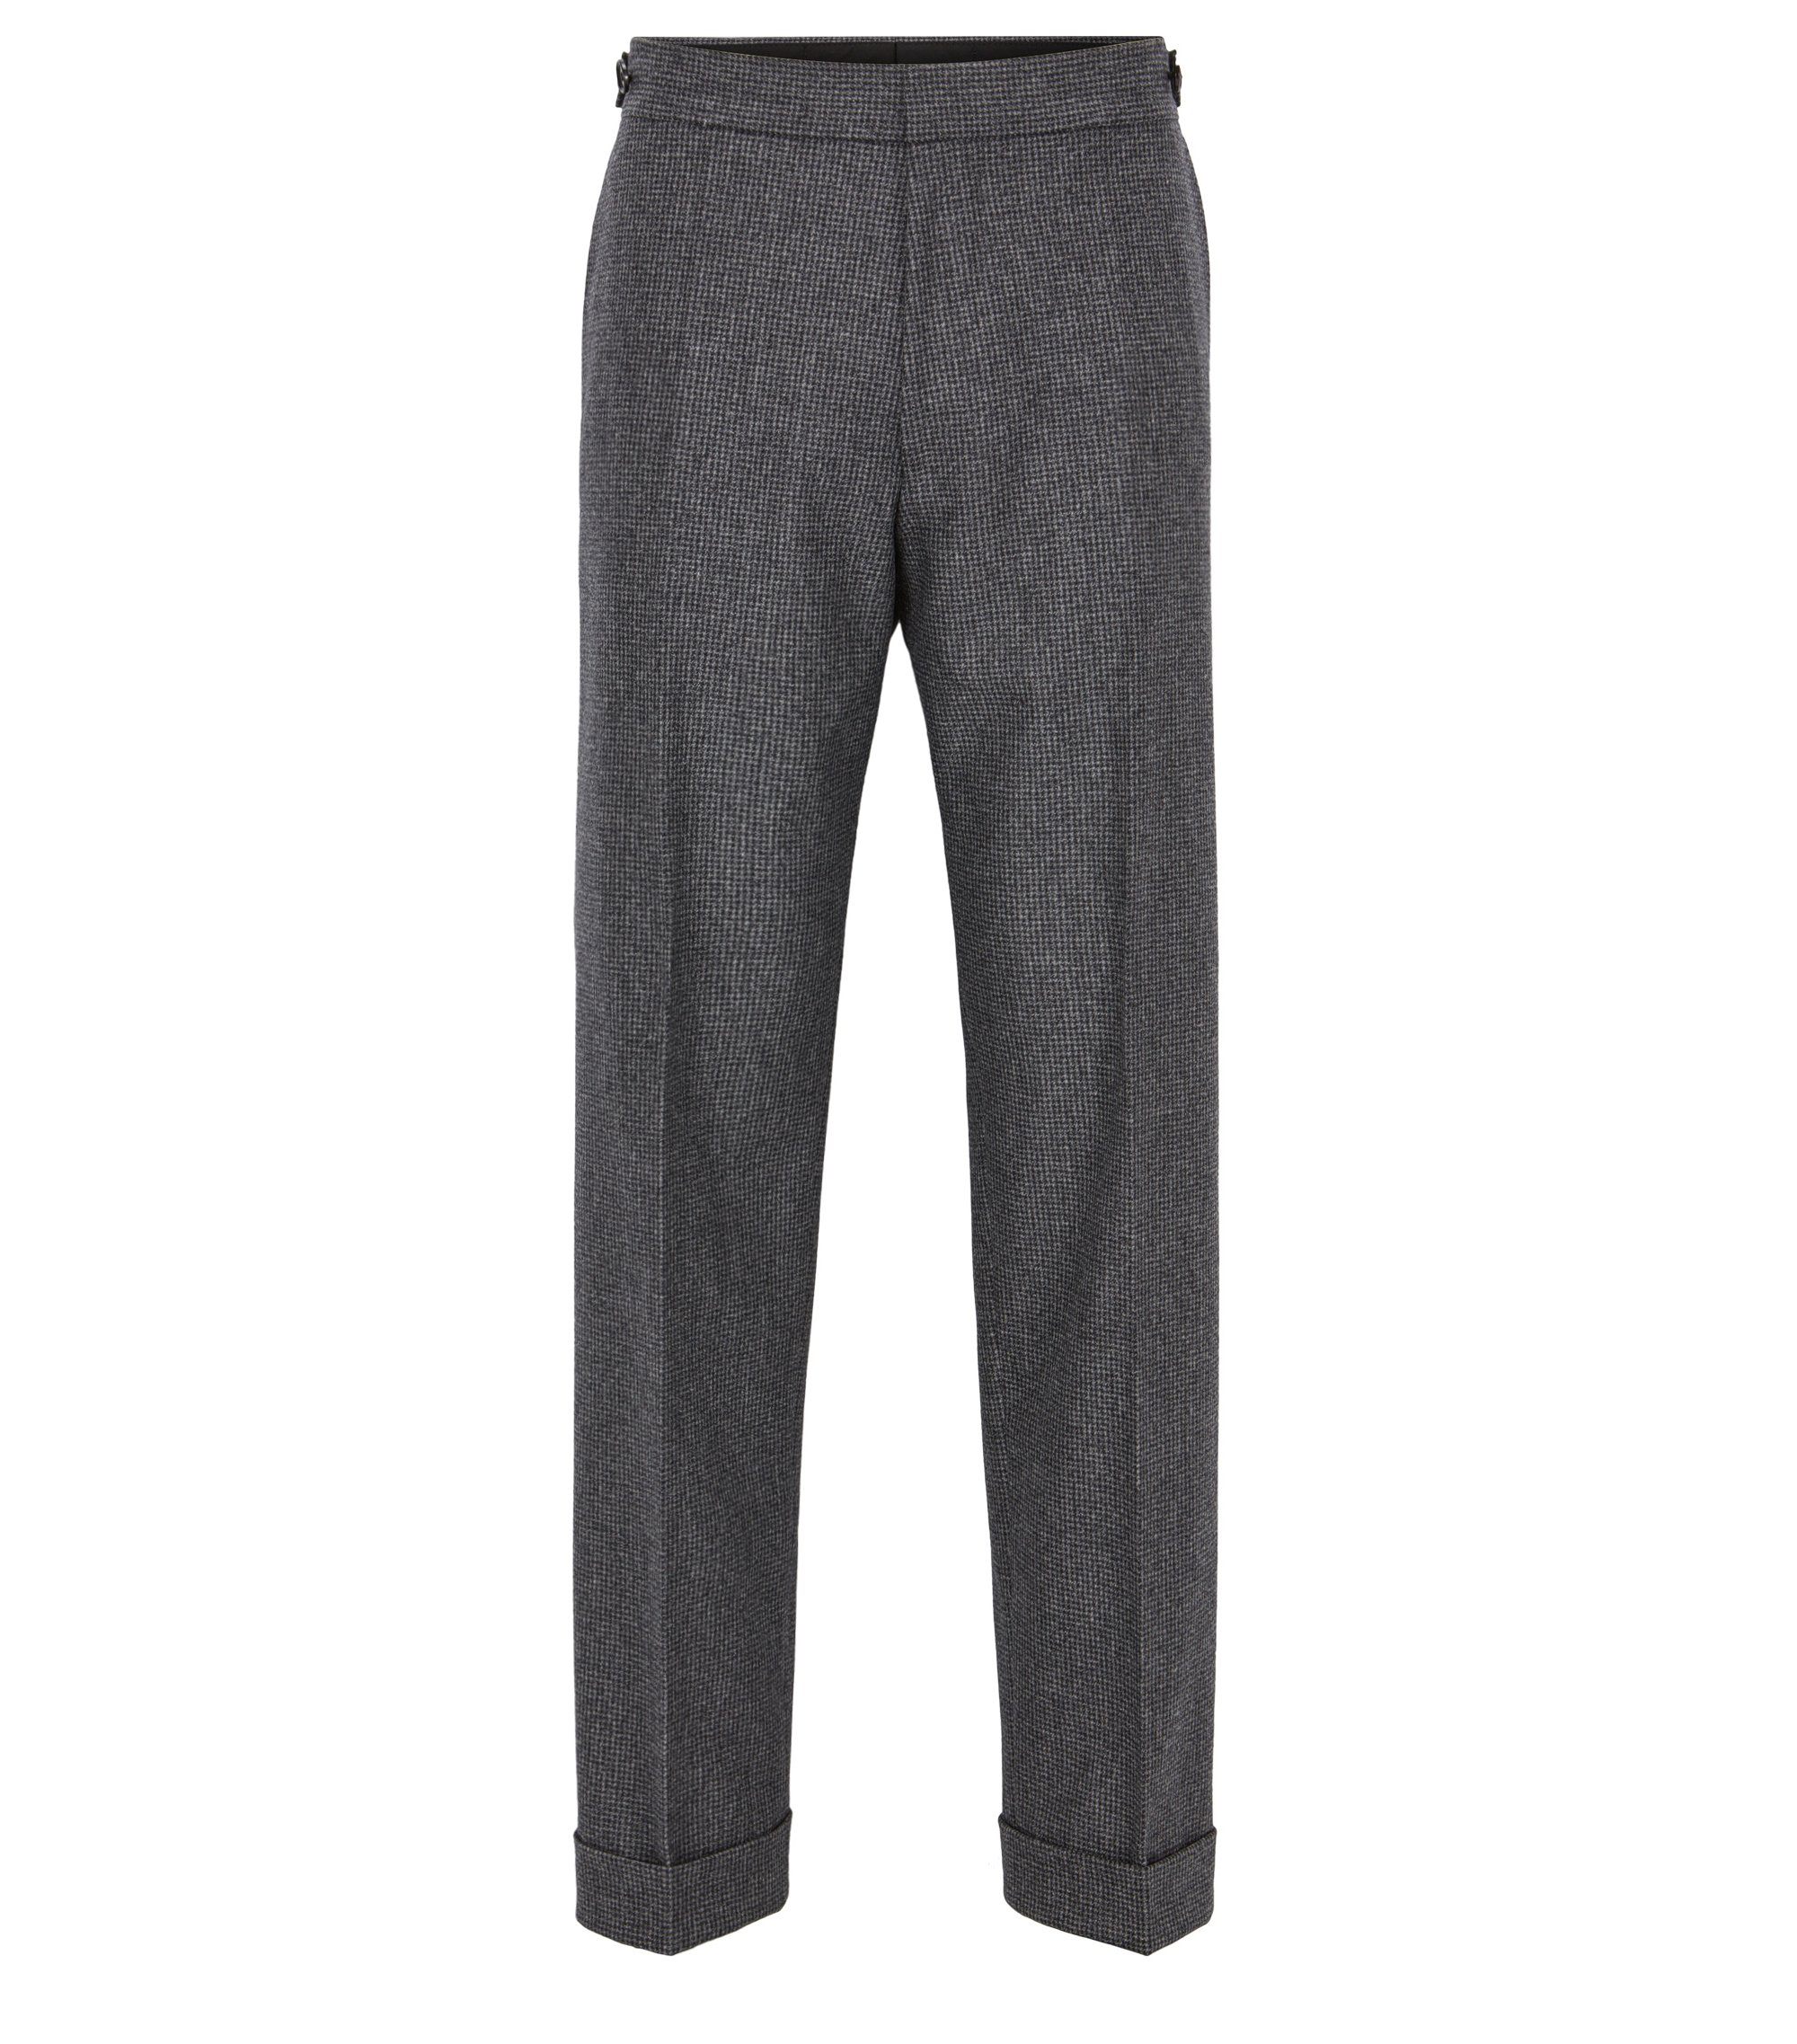 Virgin Wool Dress Pants, Charcoal